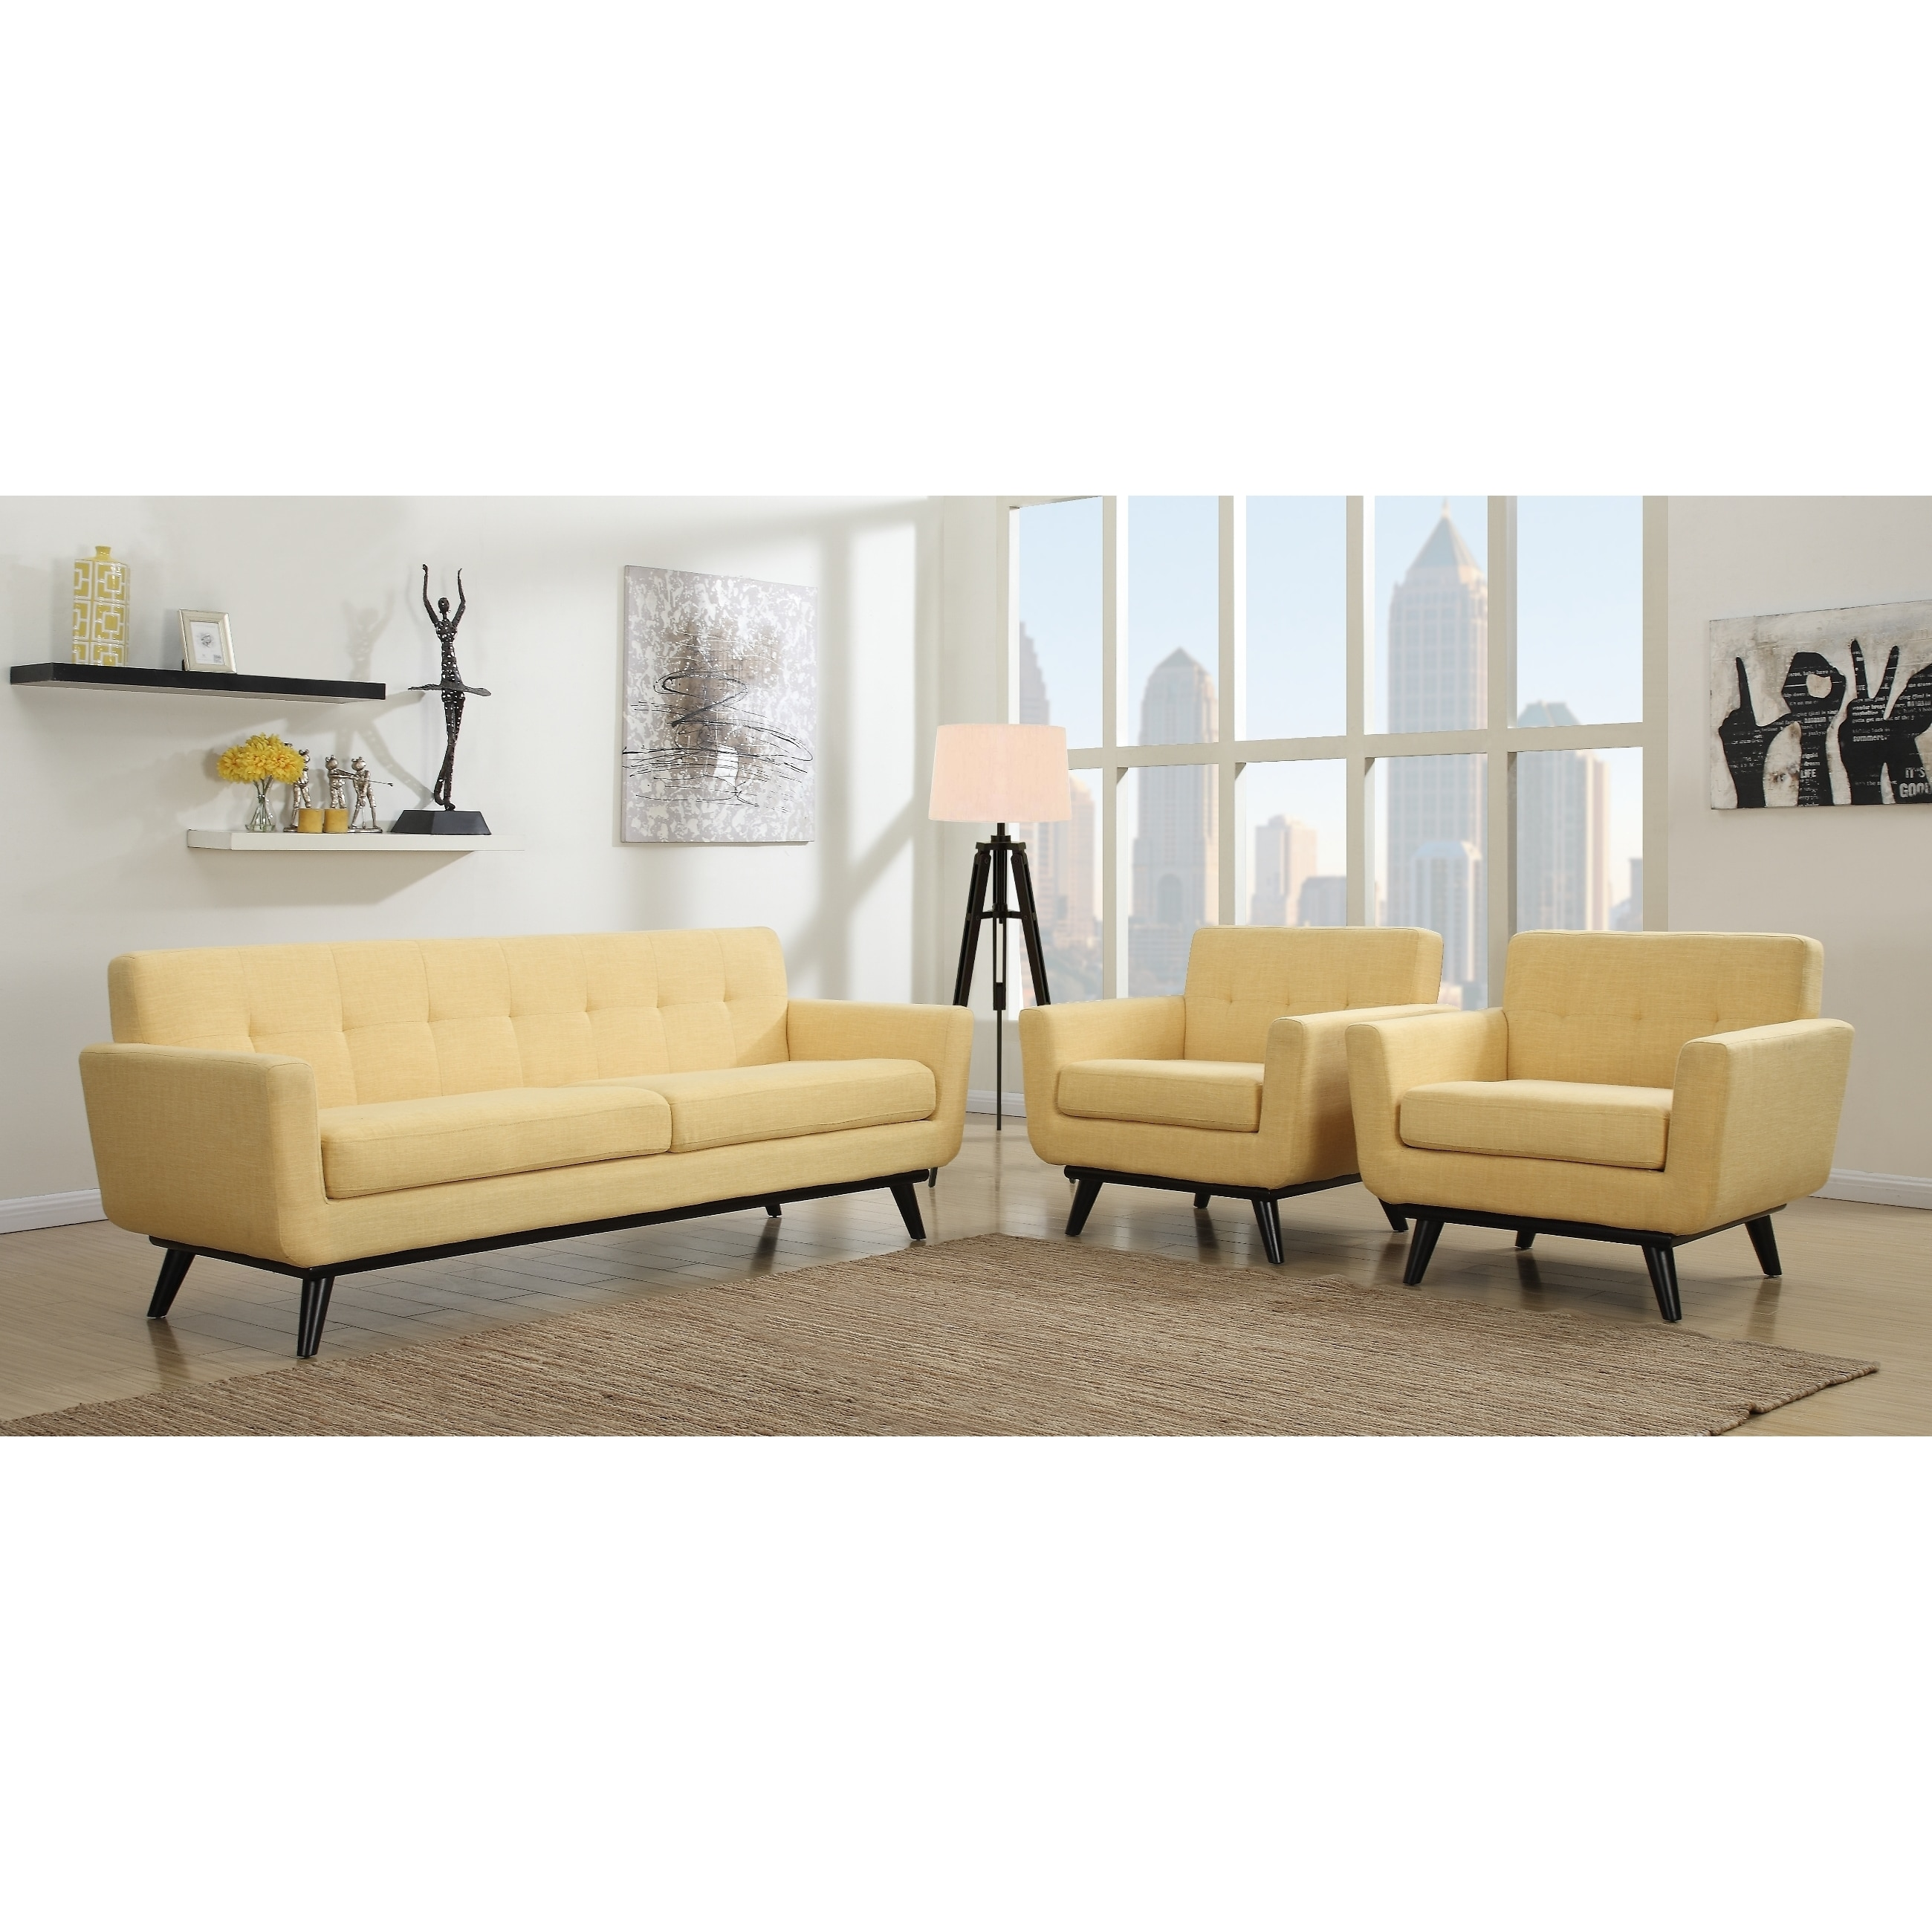 Shop James Mustard Yellow Living Room Set - Free Shipping Today ...